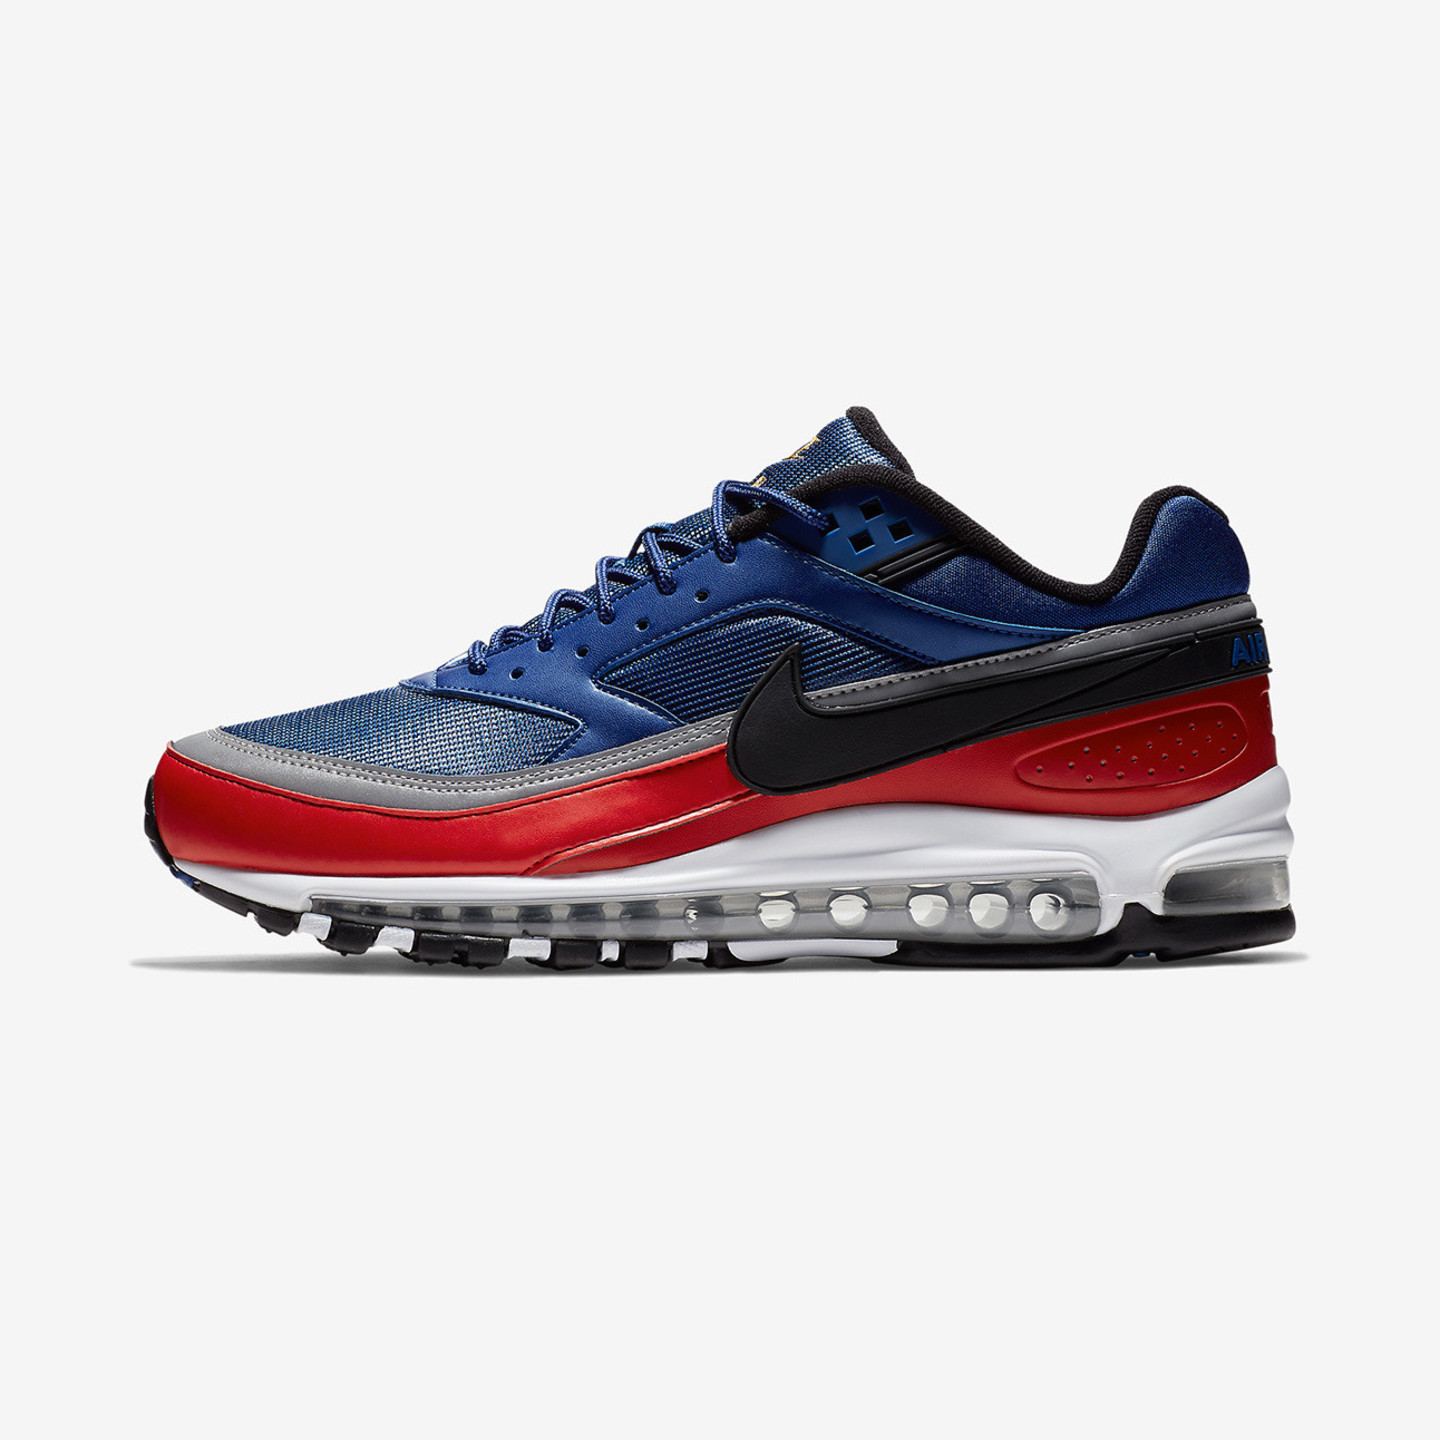 Nike Air Max 97/BW Deep Royal Blue / Black / University Red AO2406-400